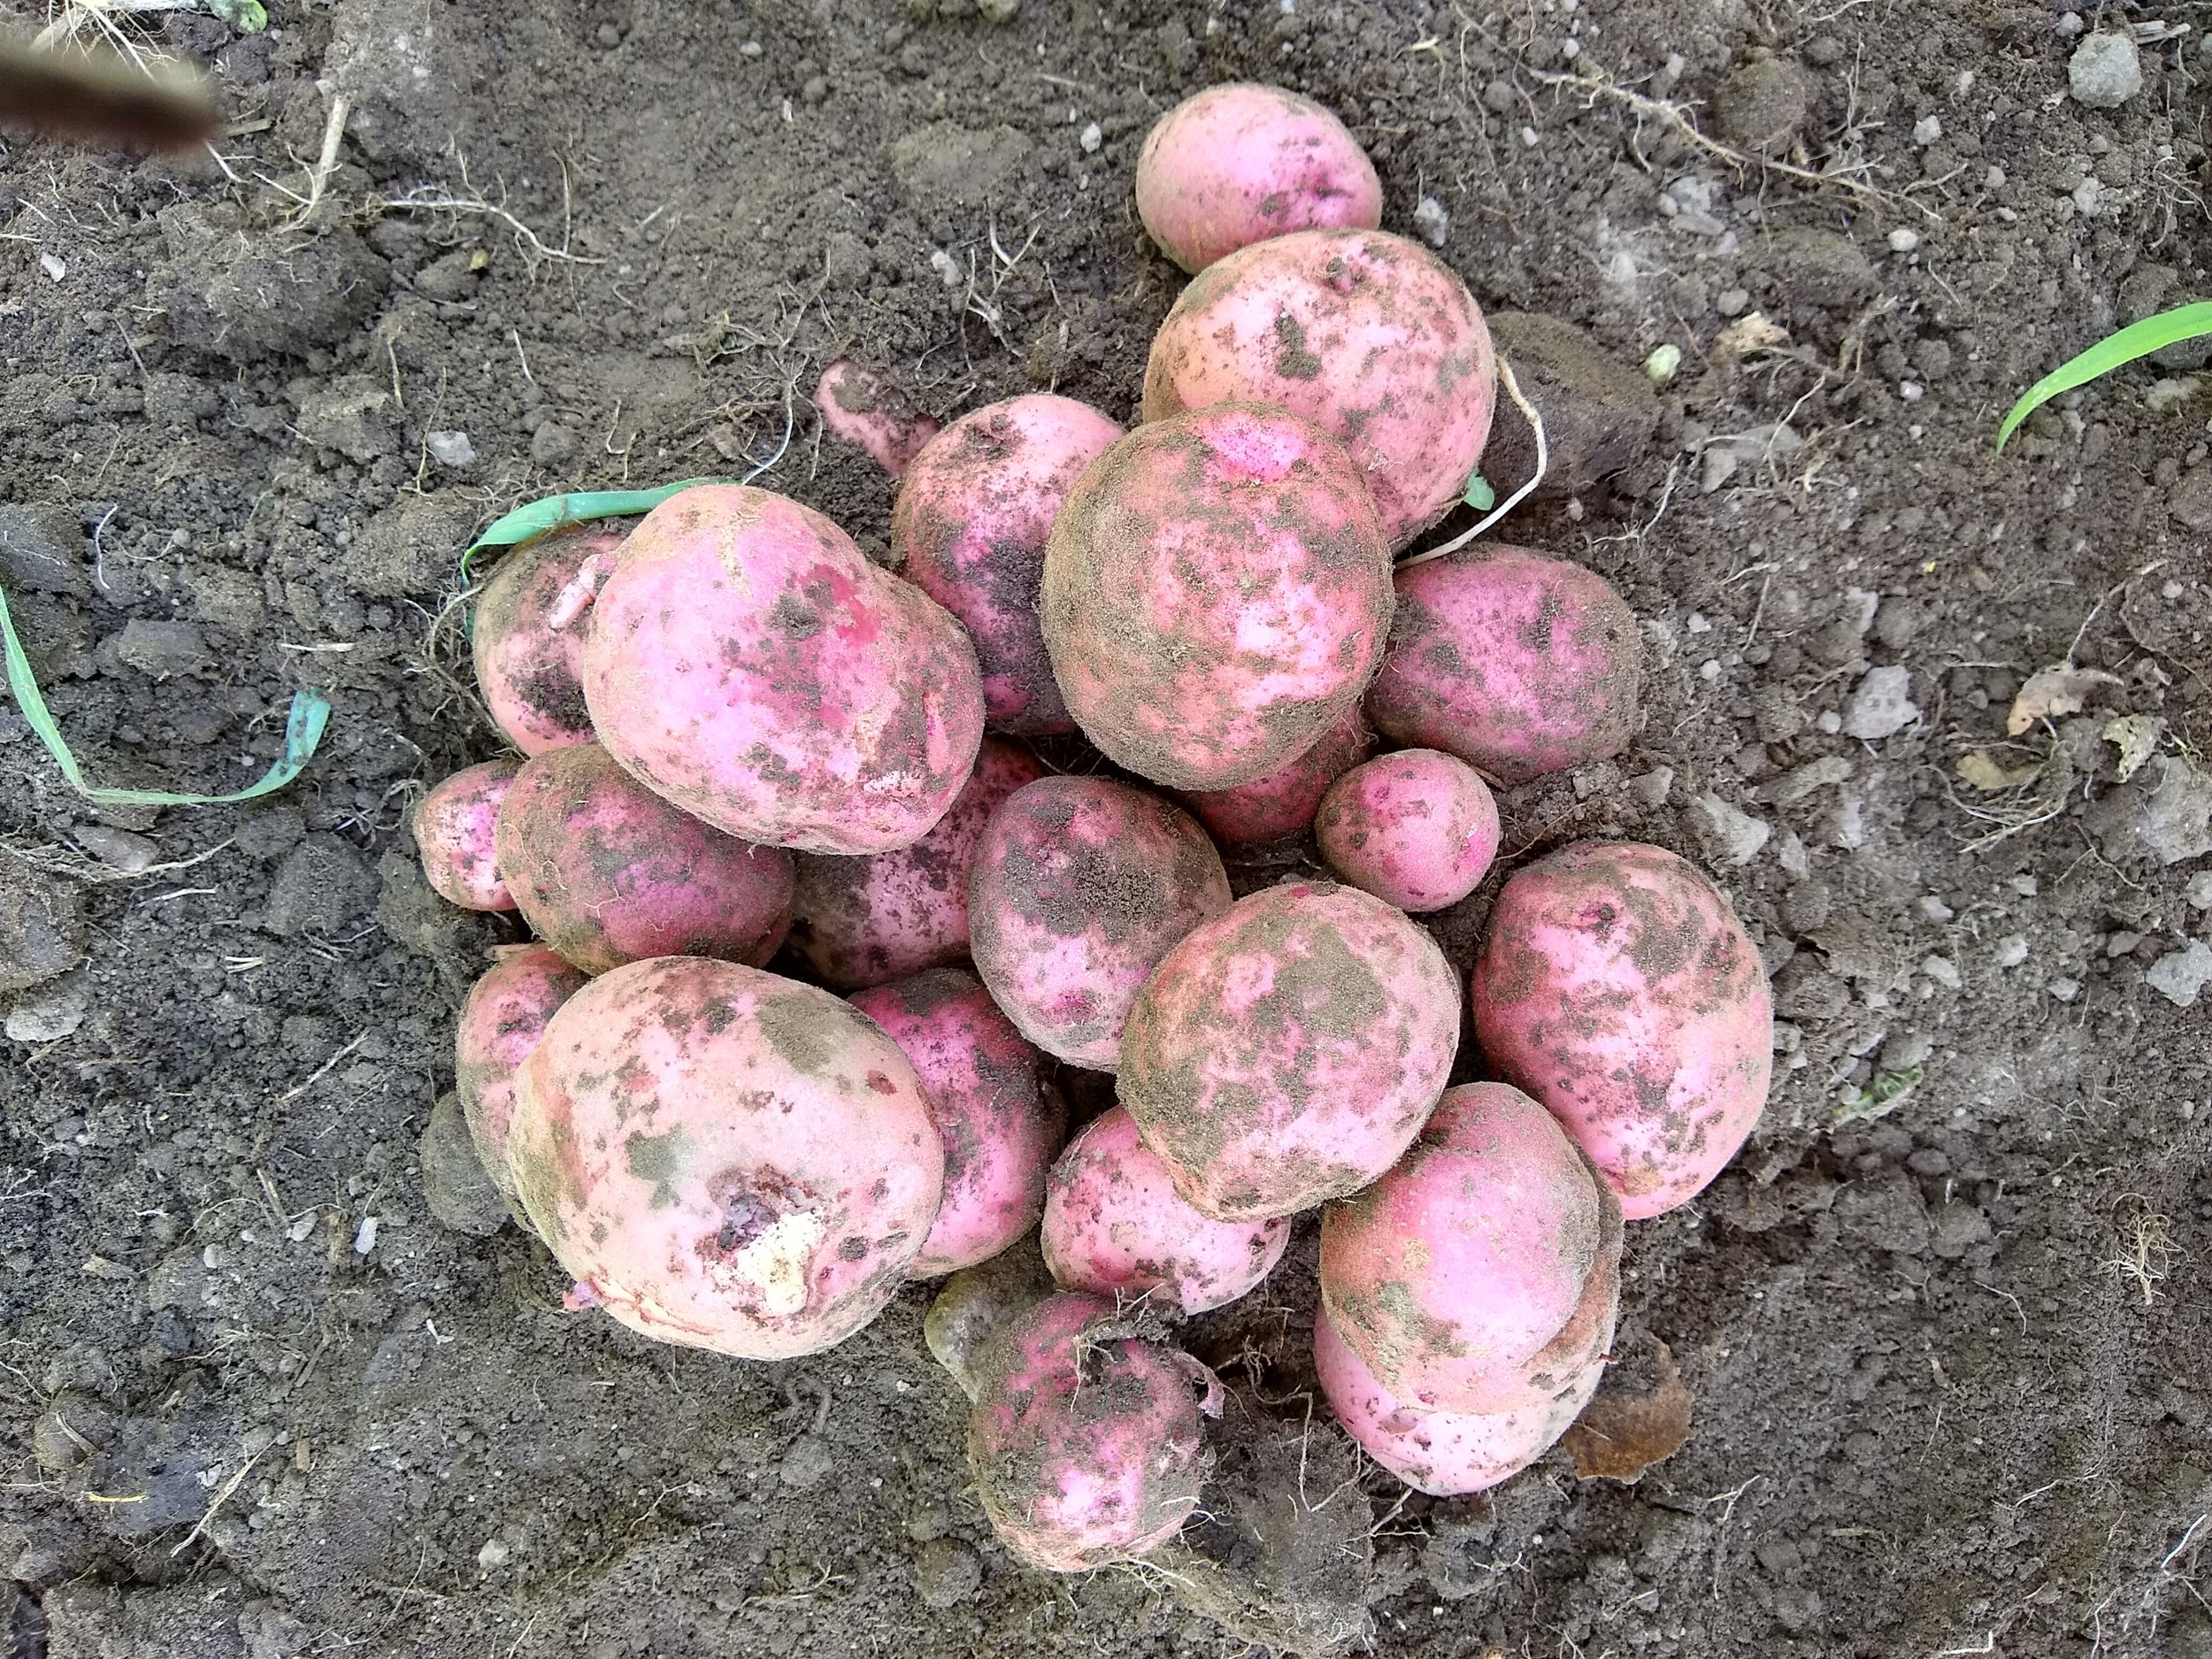 Look at those beautiful spuds!